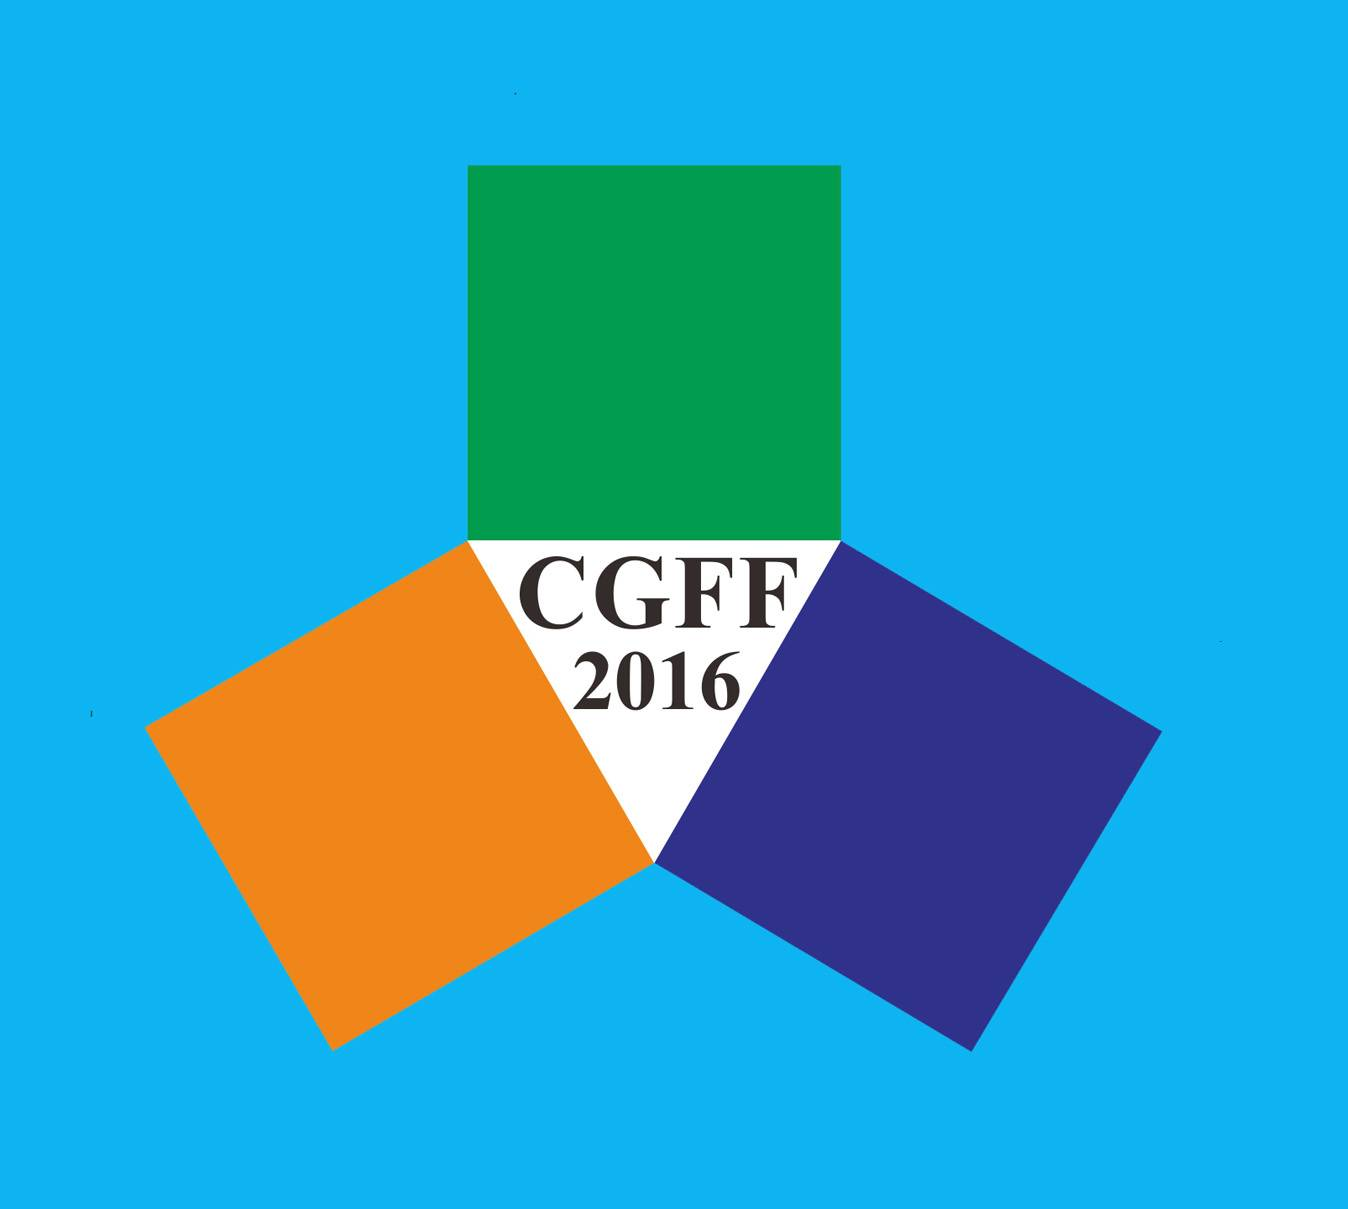 CGFF2016-- 5th China Guangzhou International Floor Fair